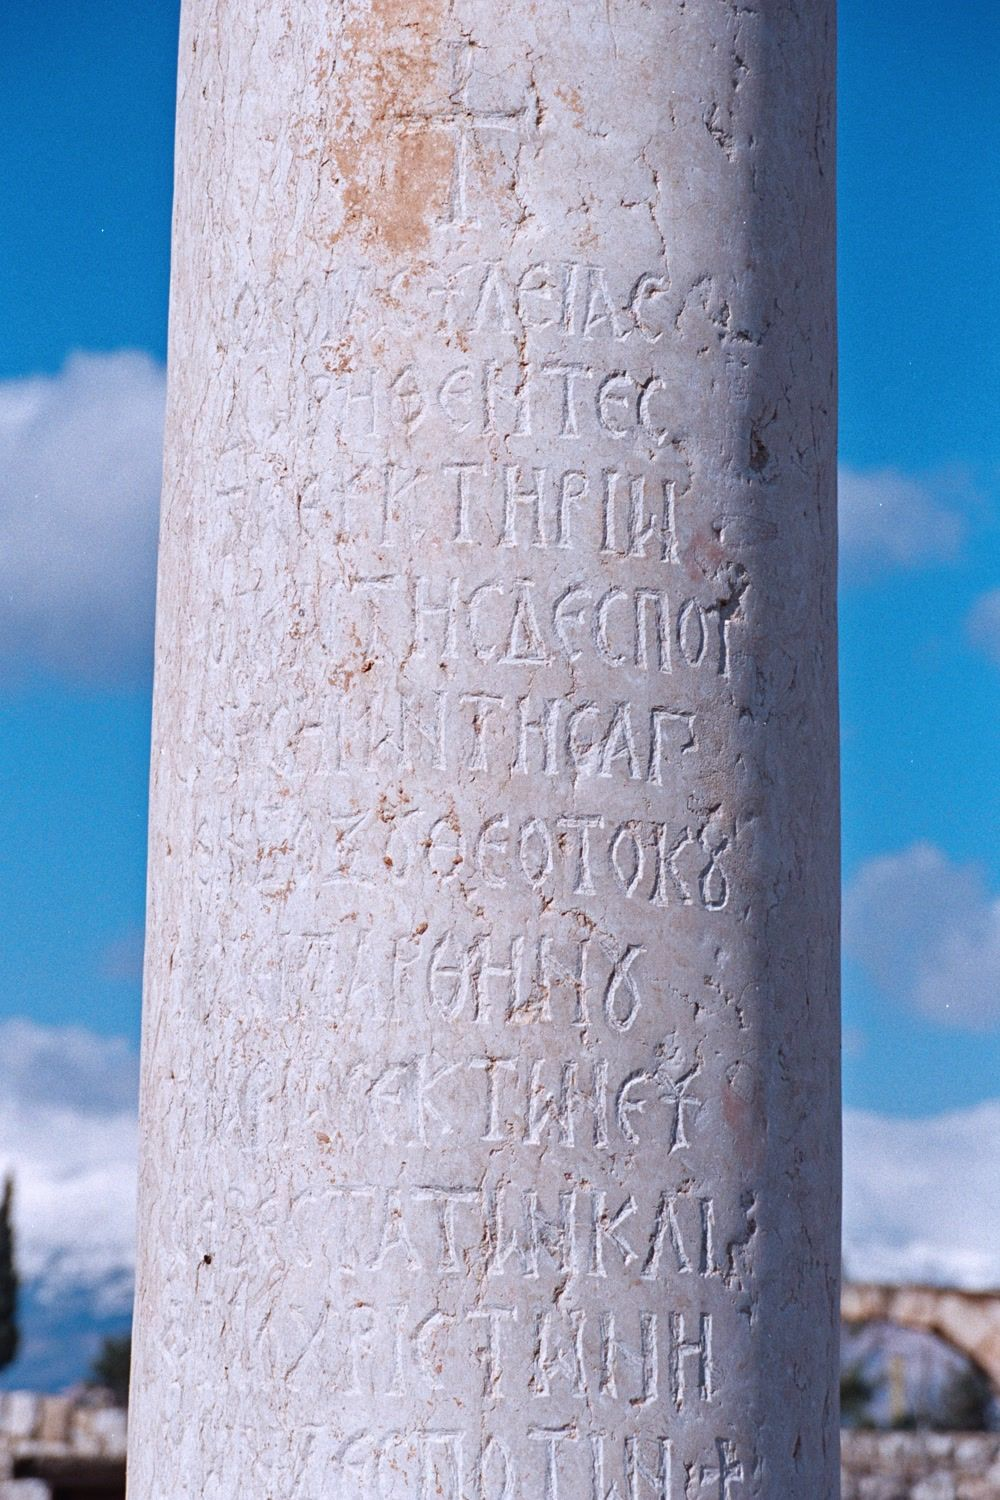 title: Old Scriptures Inscribed on Stone